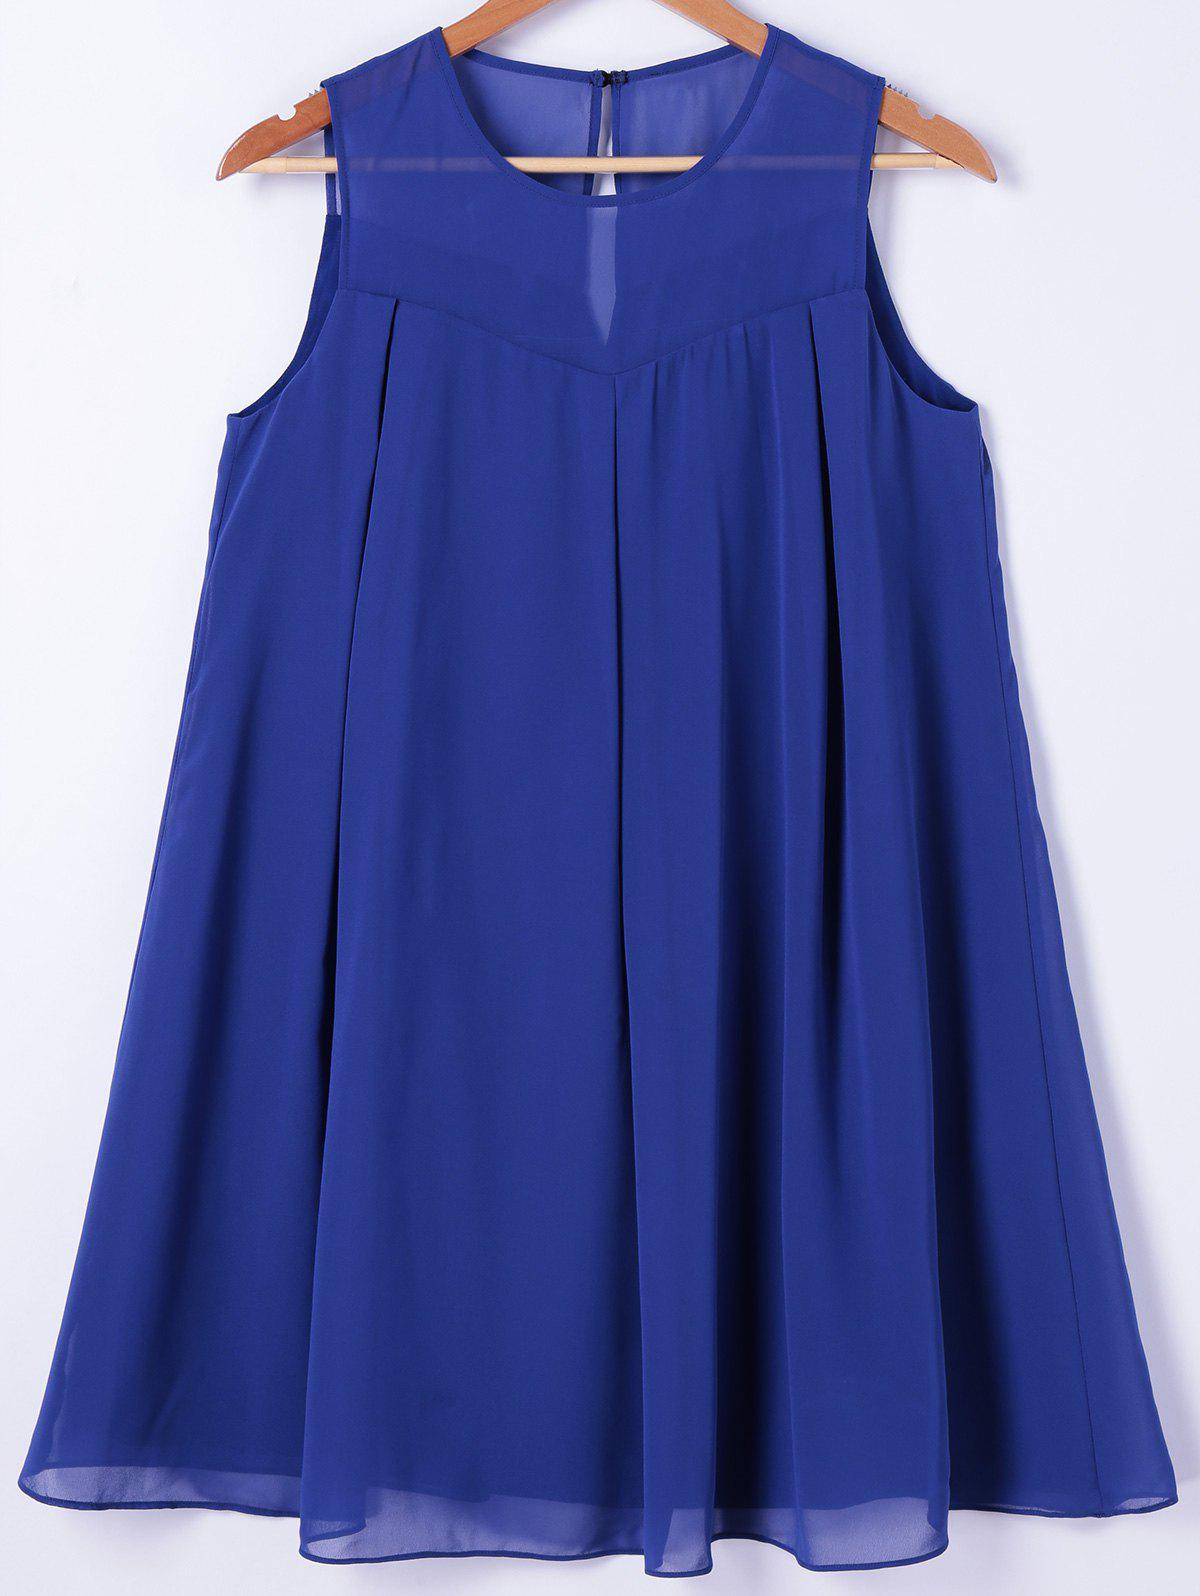 Fashionable Women's Round Neck Sleeveless Solid Color Dress - BLUE M